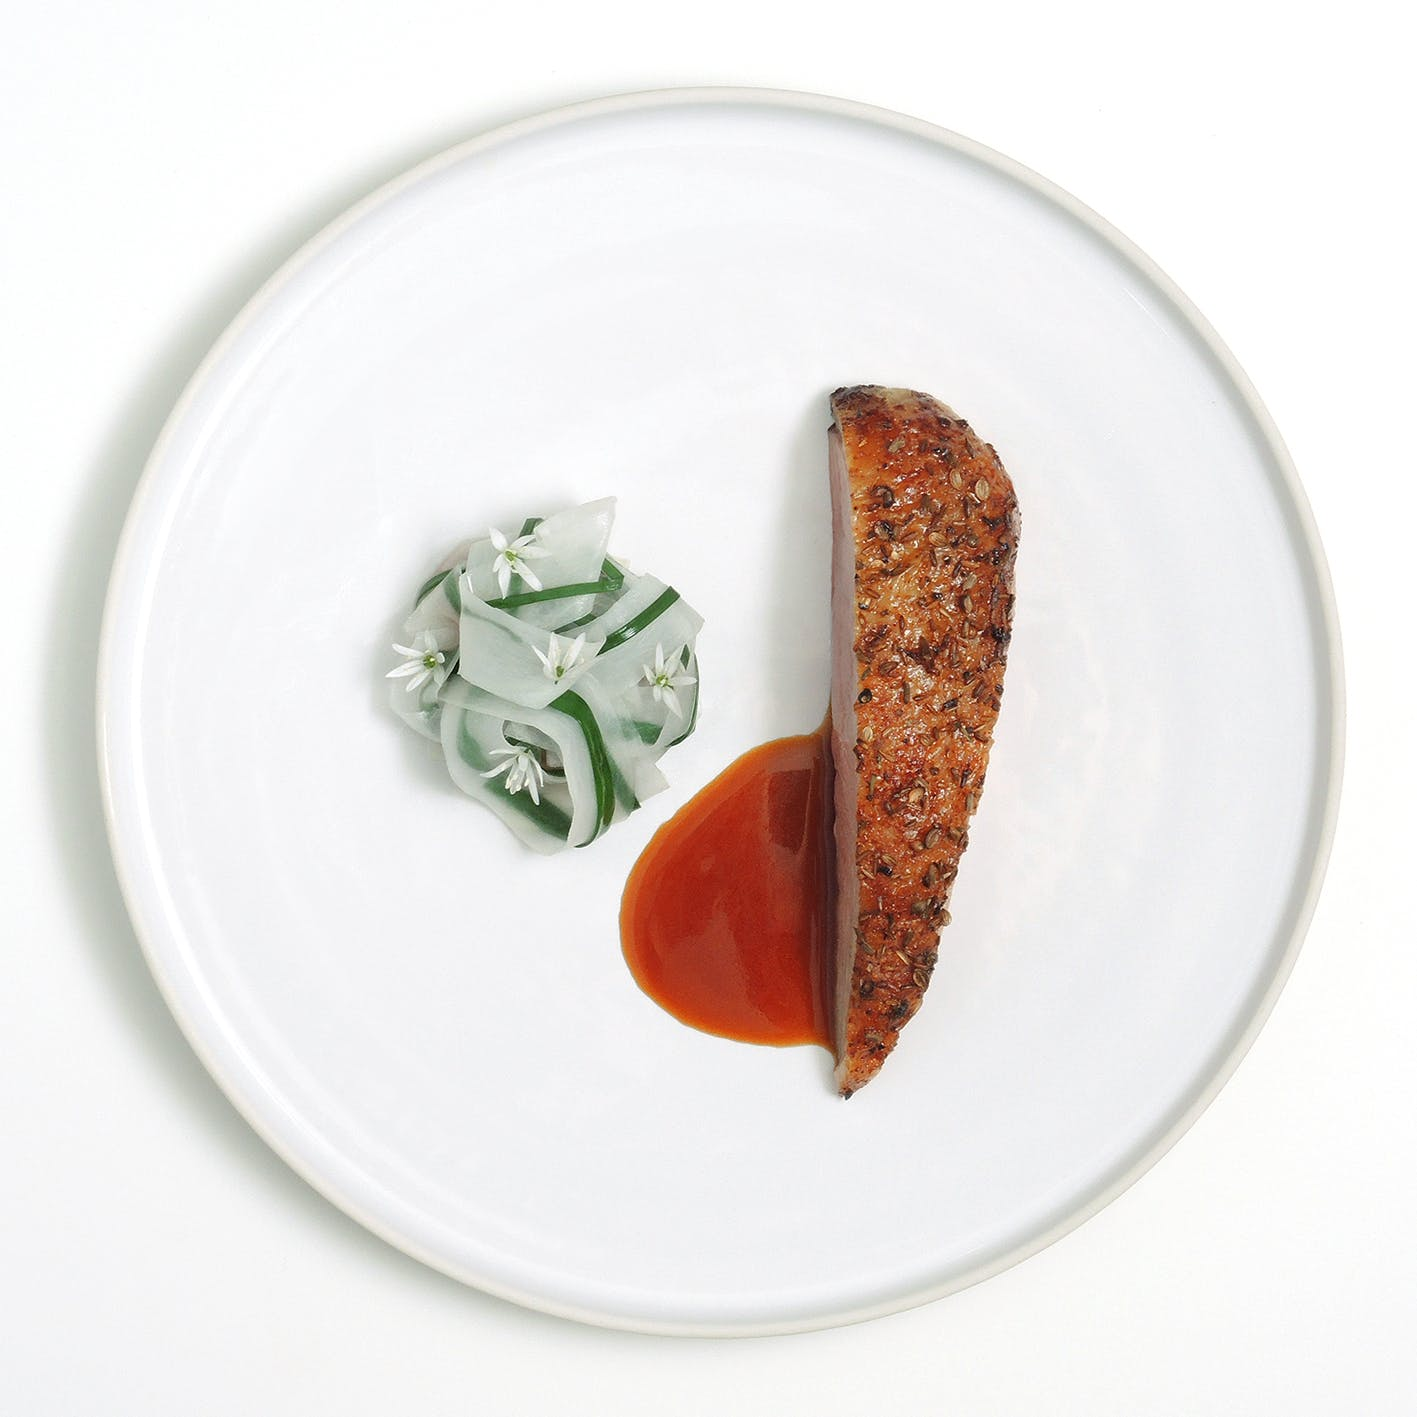 a plate of food with a slice cut out